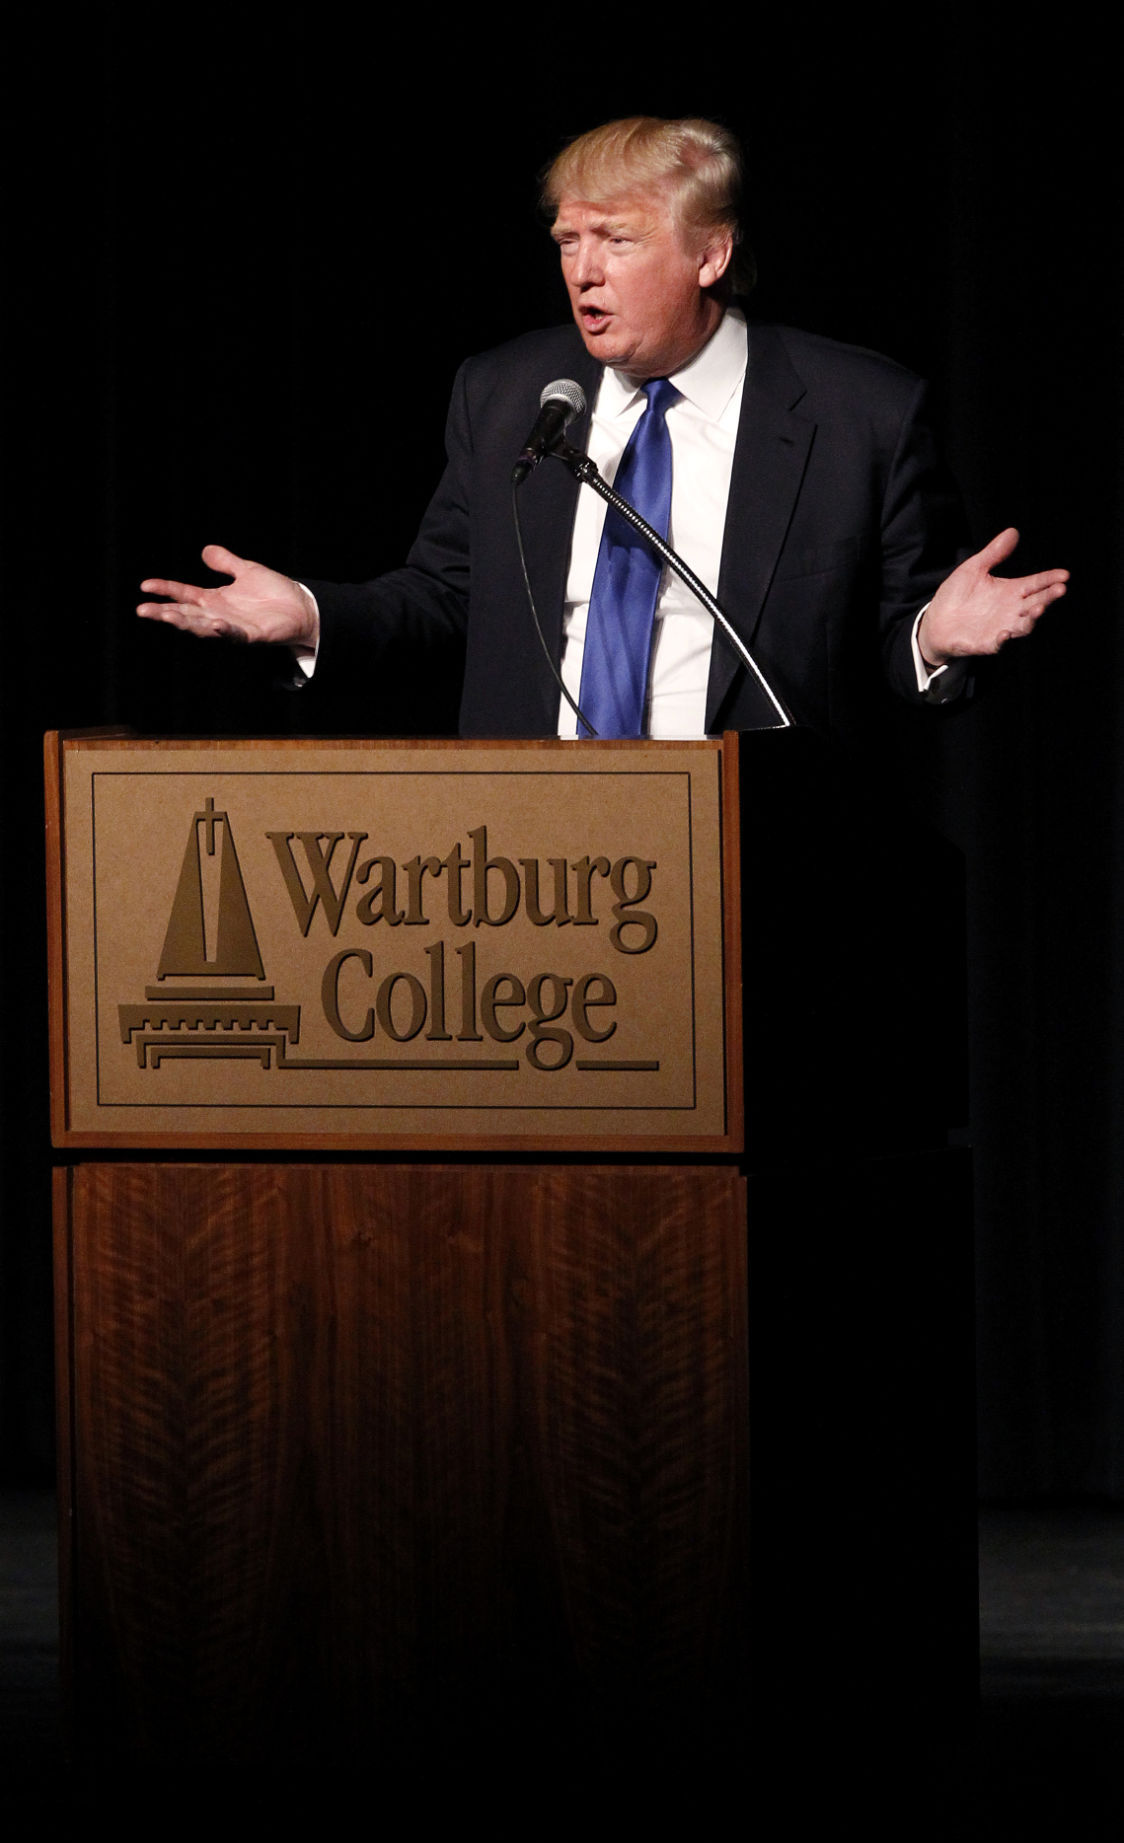 Trump gives business lessons at Wartburg College | Political News ...